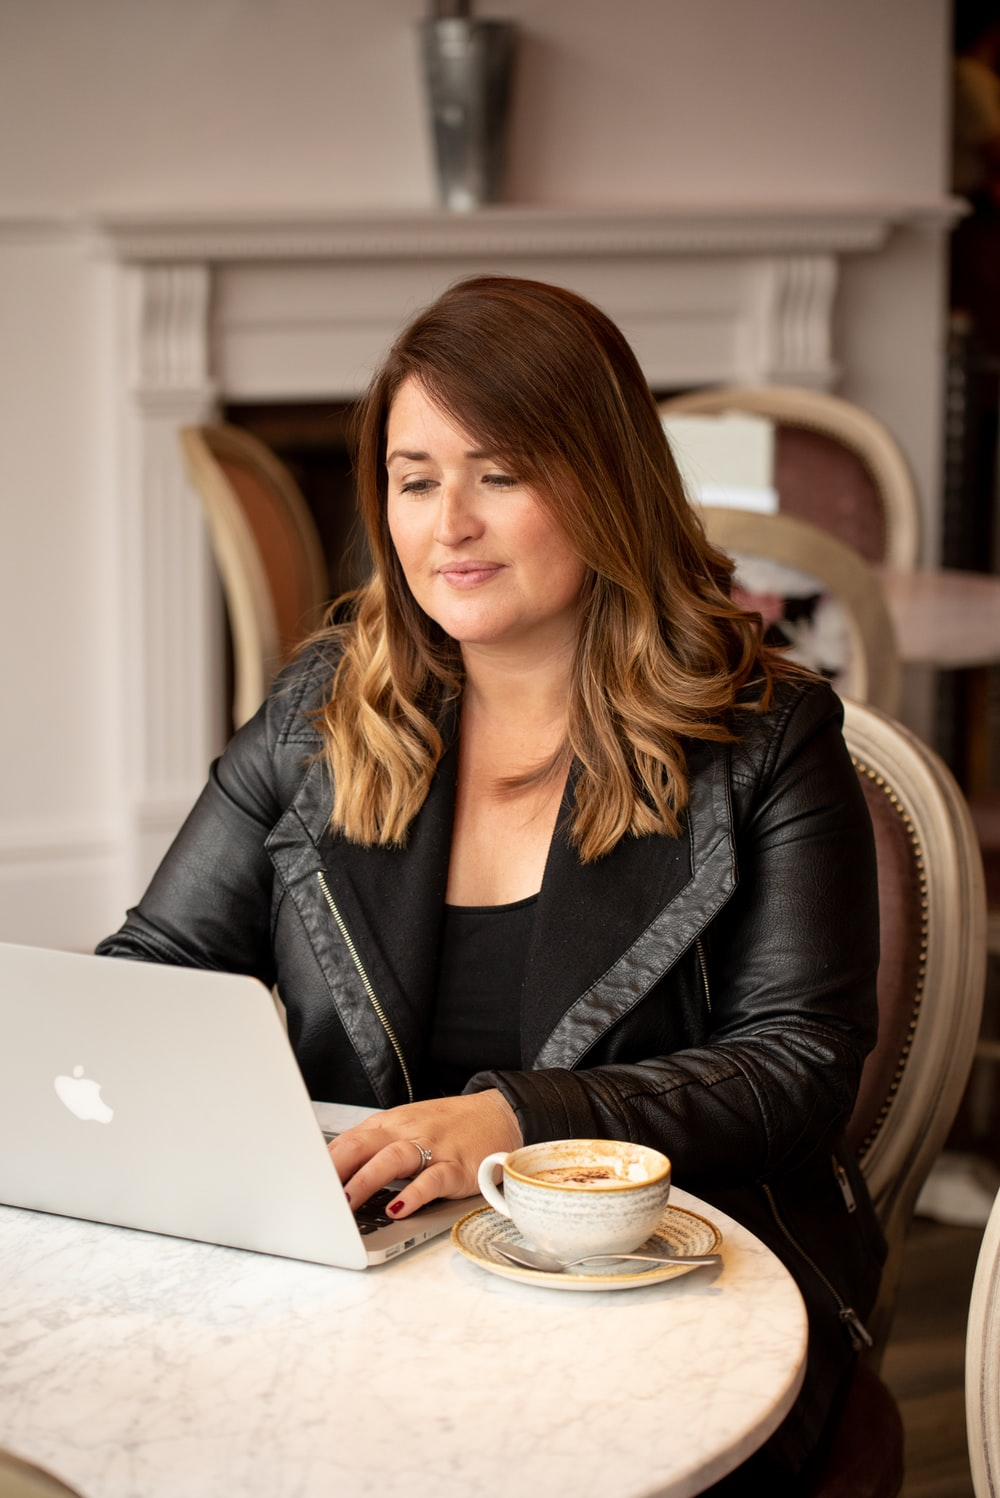 selective focus photography of woman using MacBook